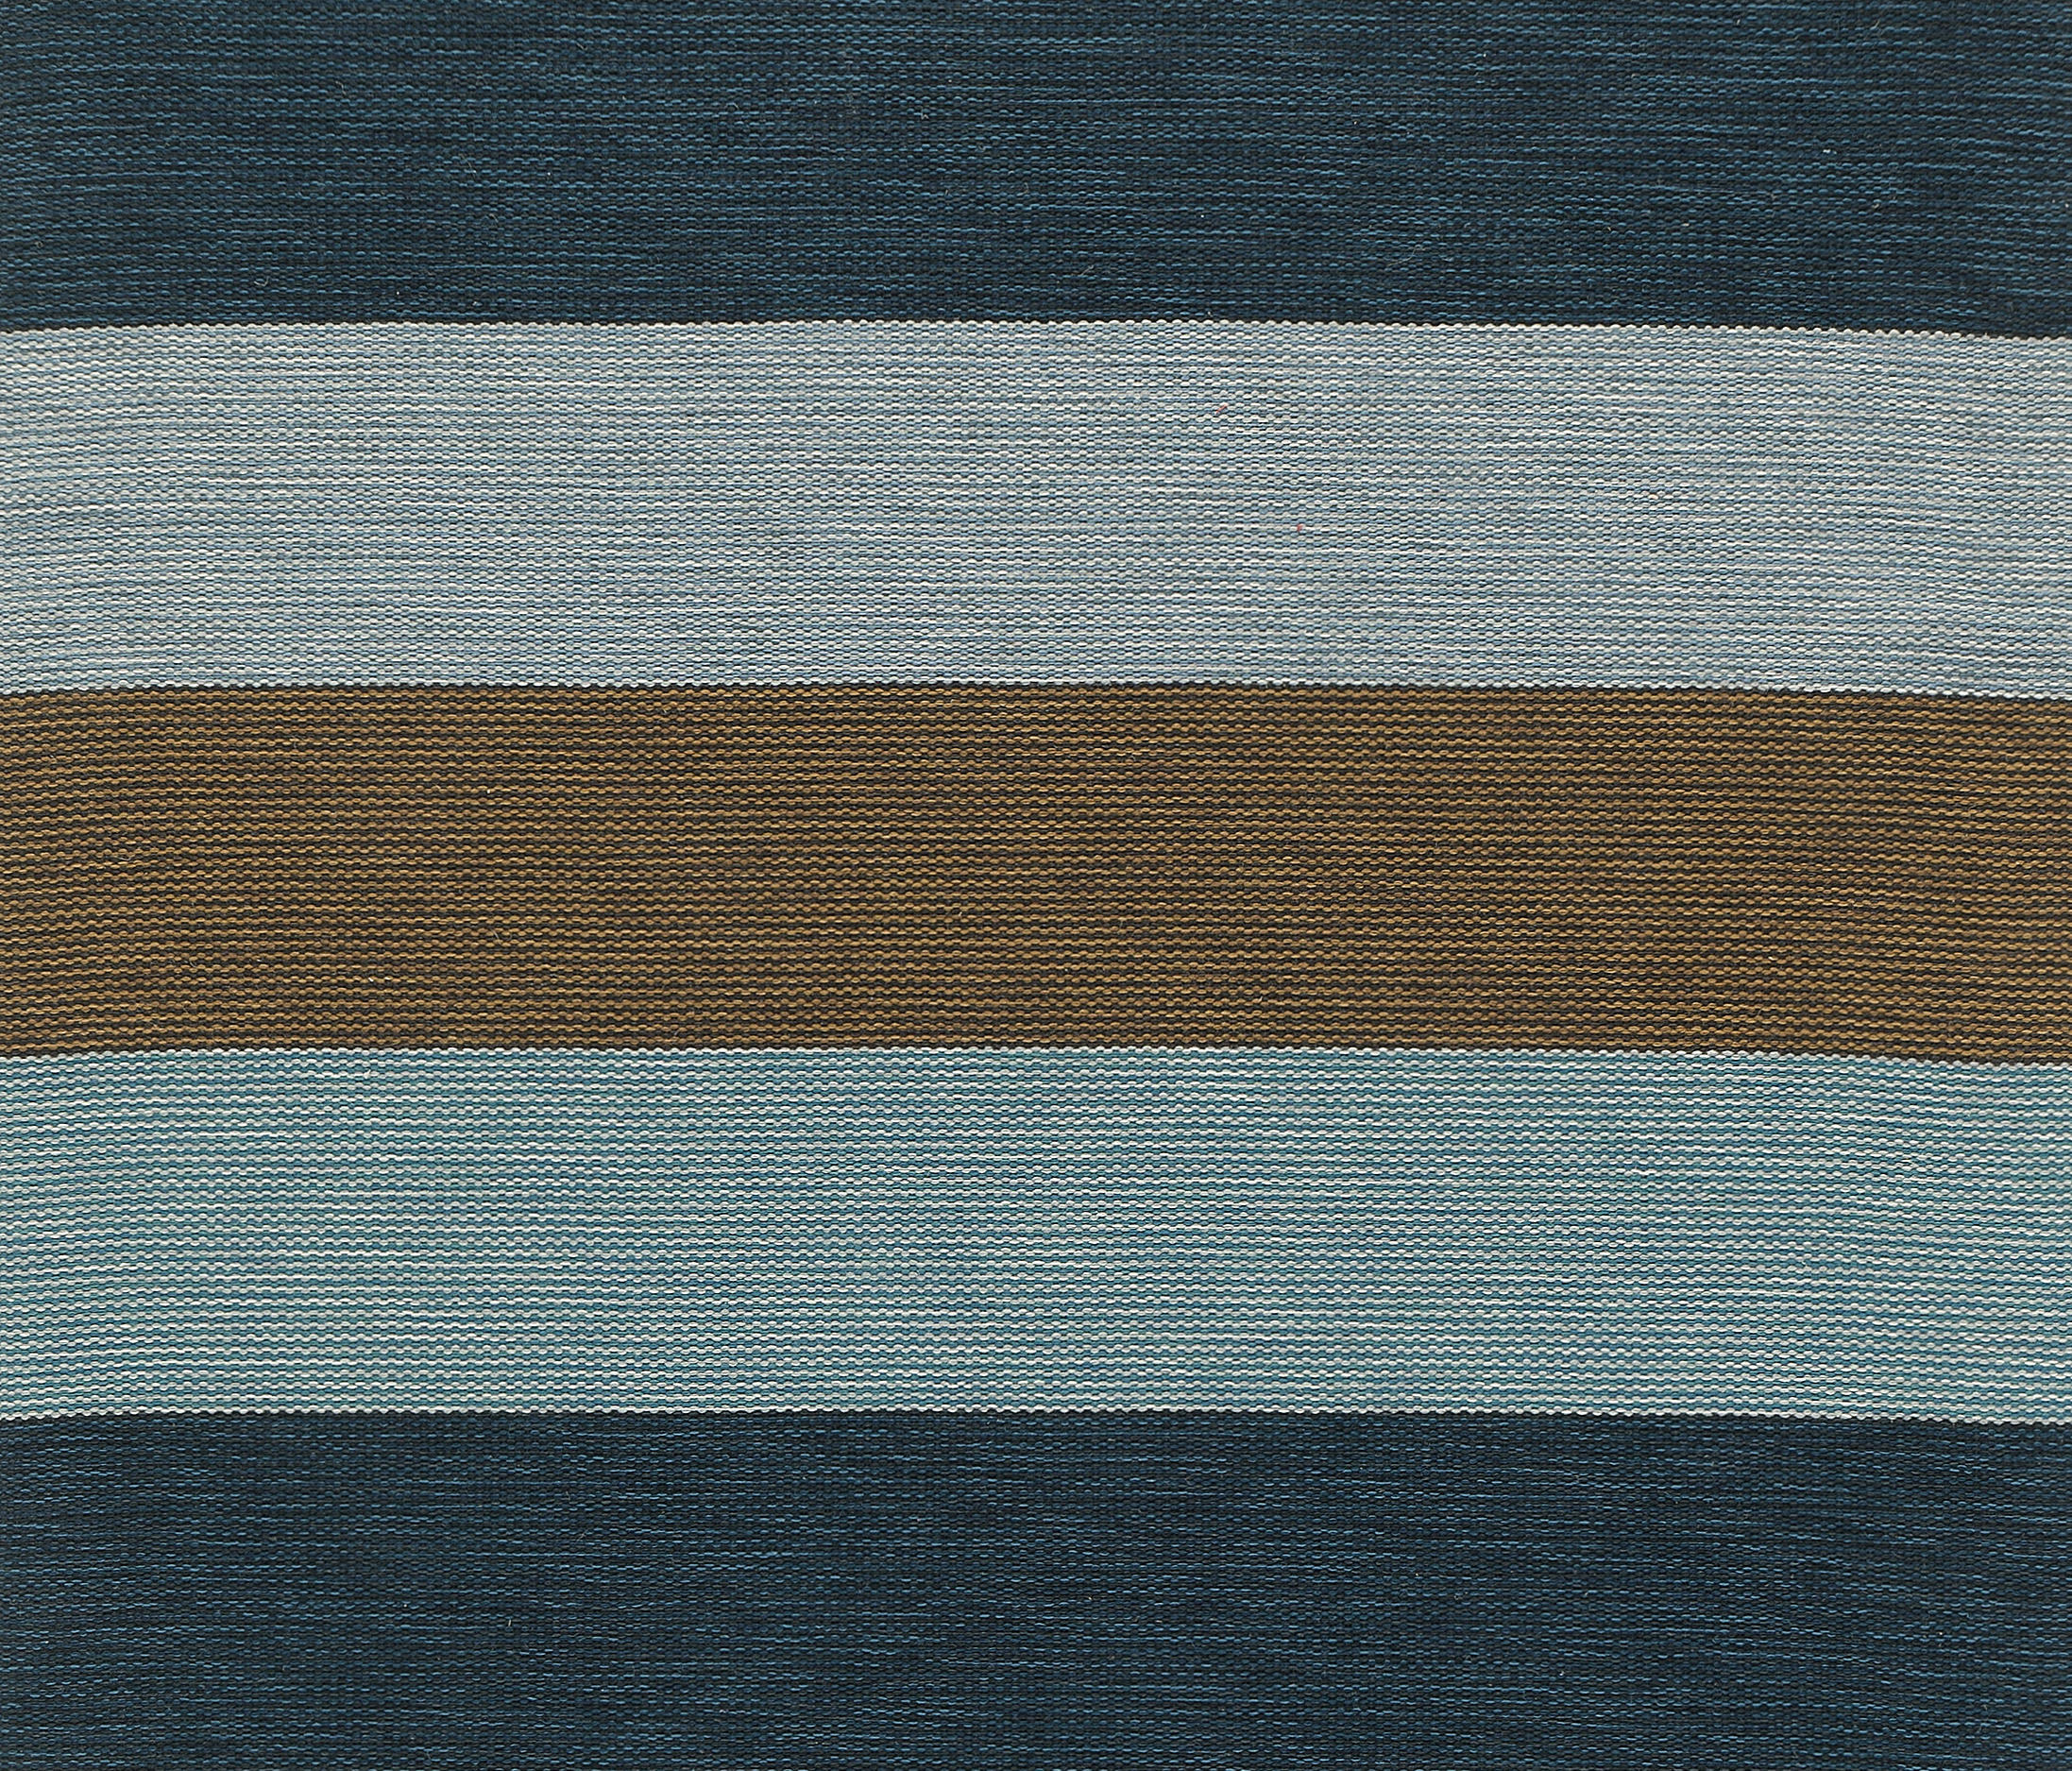 ARKAD AXEL  Rugs  Designer rugs from Kasthall  Architonic